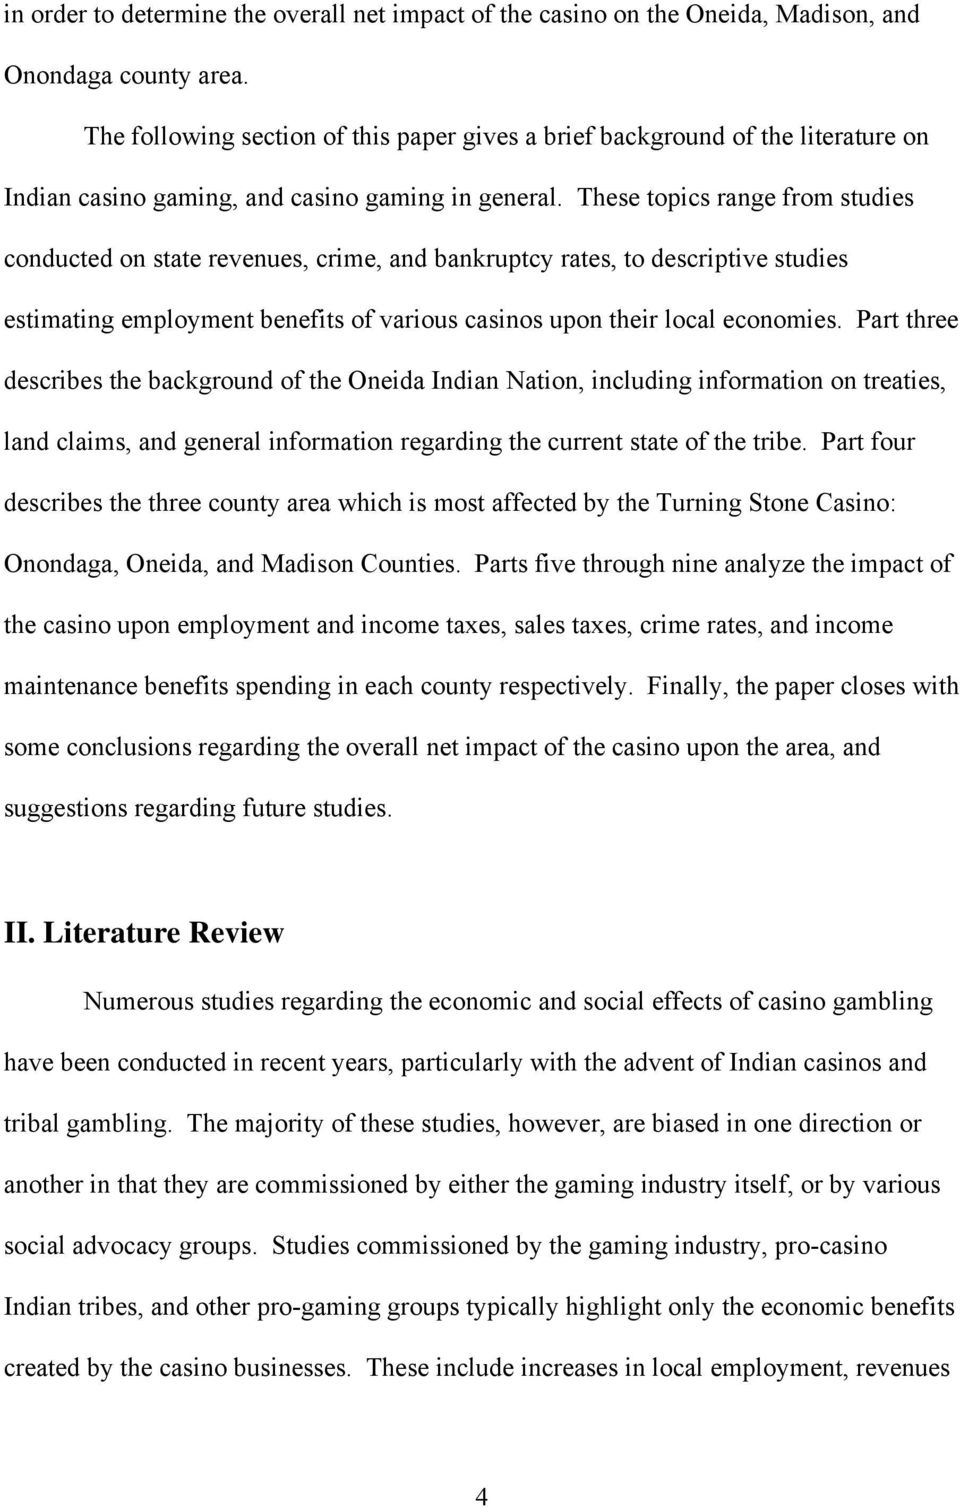 These topics range from studies conducted on state revenues, crime, and bankruptcy rates, to descriptive studies estimating employment benefits of various casinos upon their local economies.